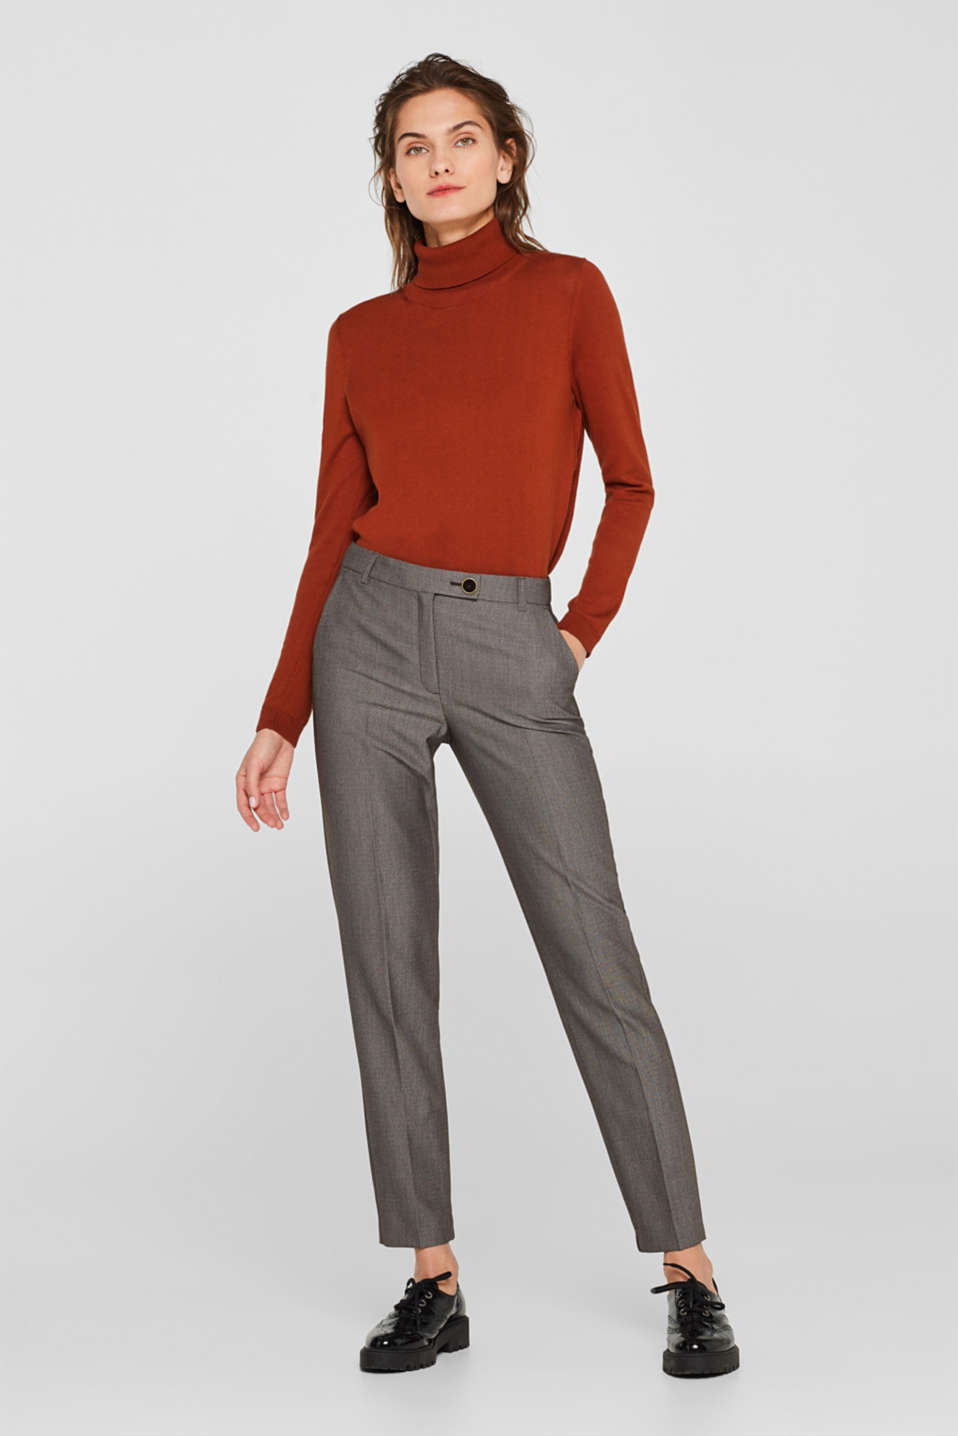 Esprit - Trousers with a two-tone texture